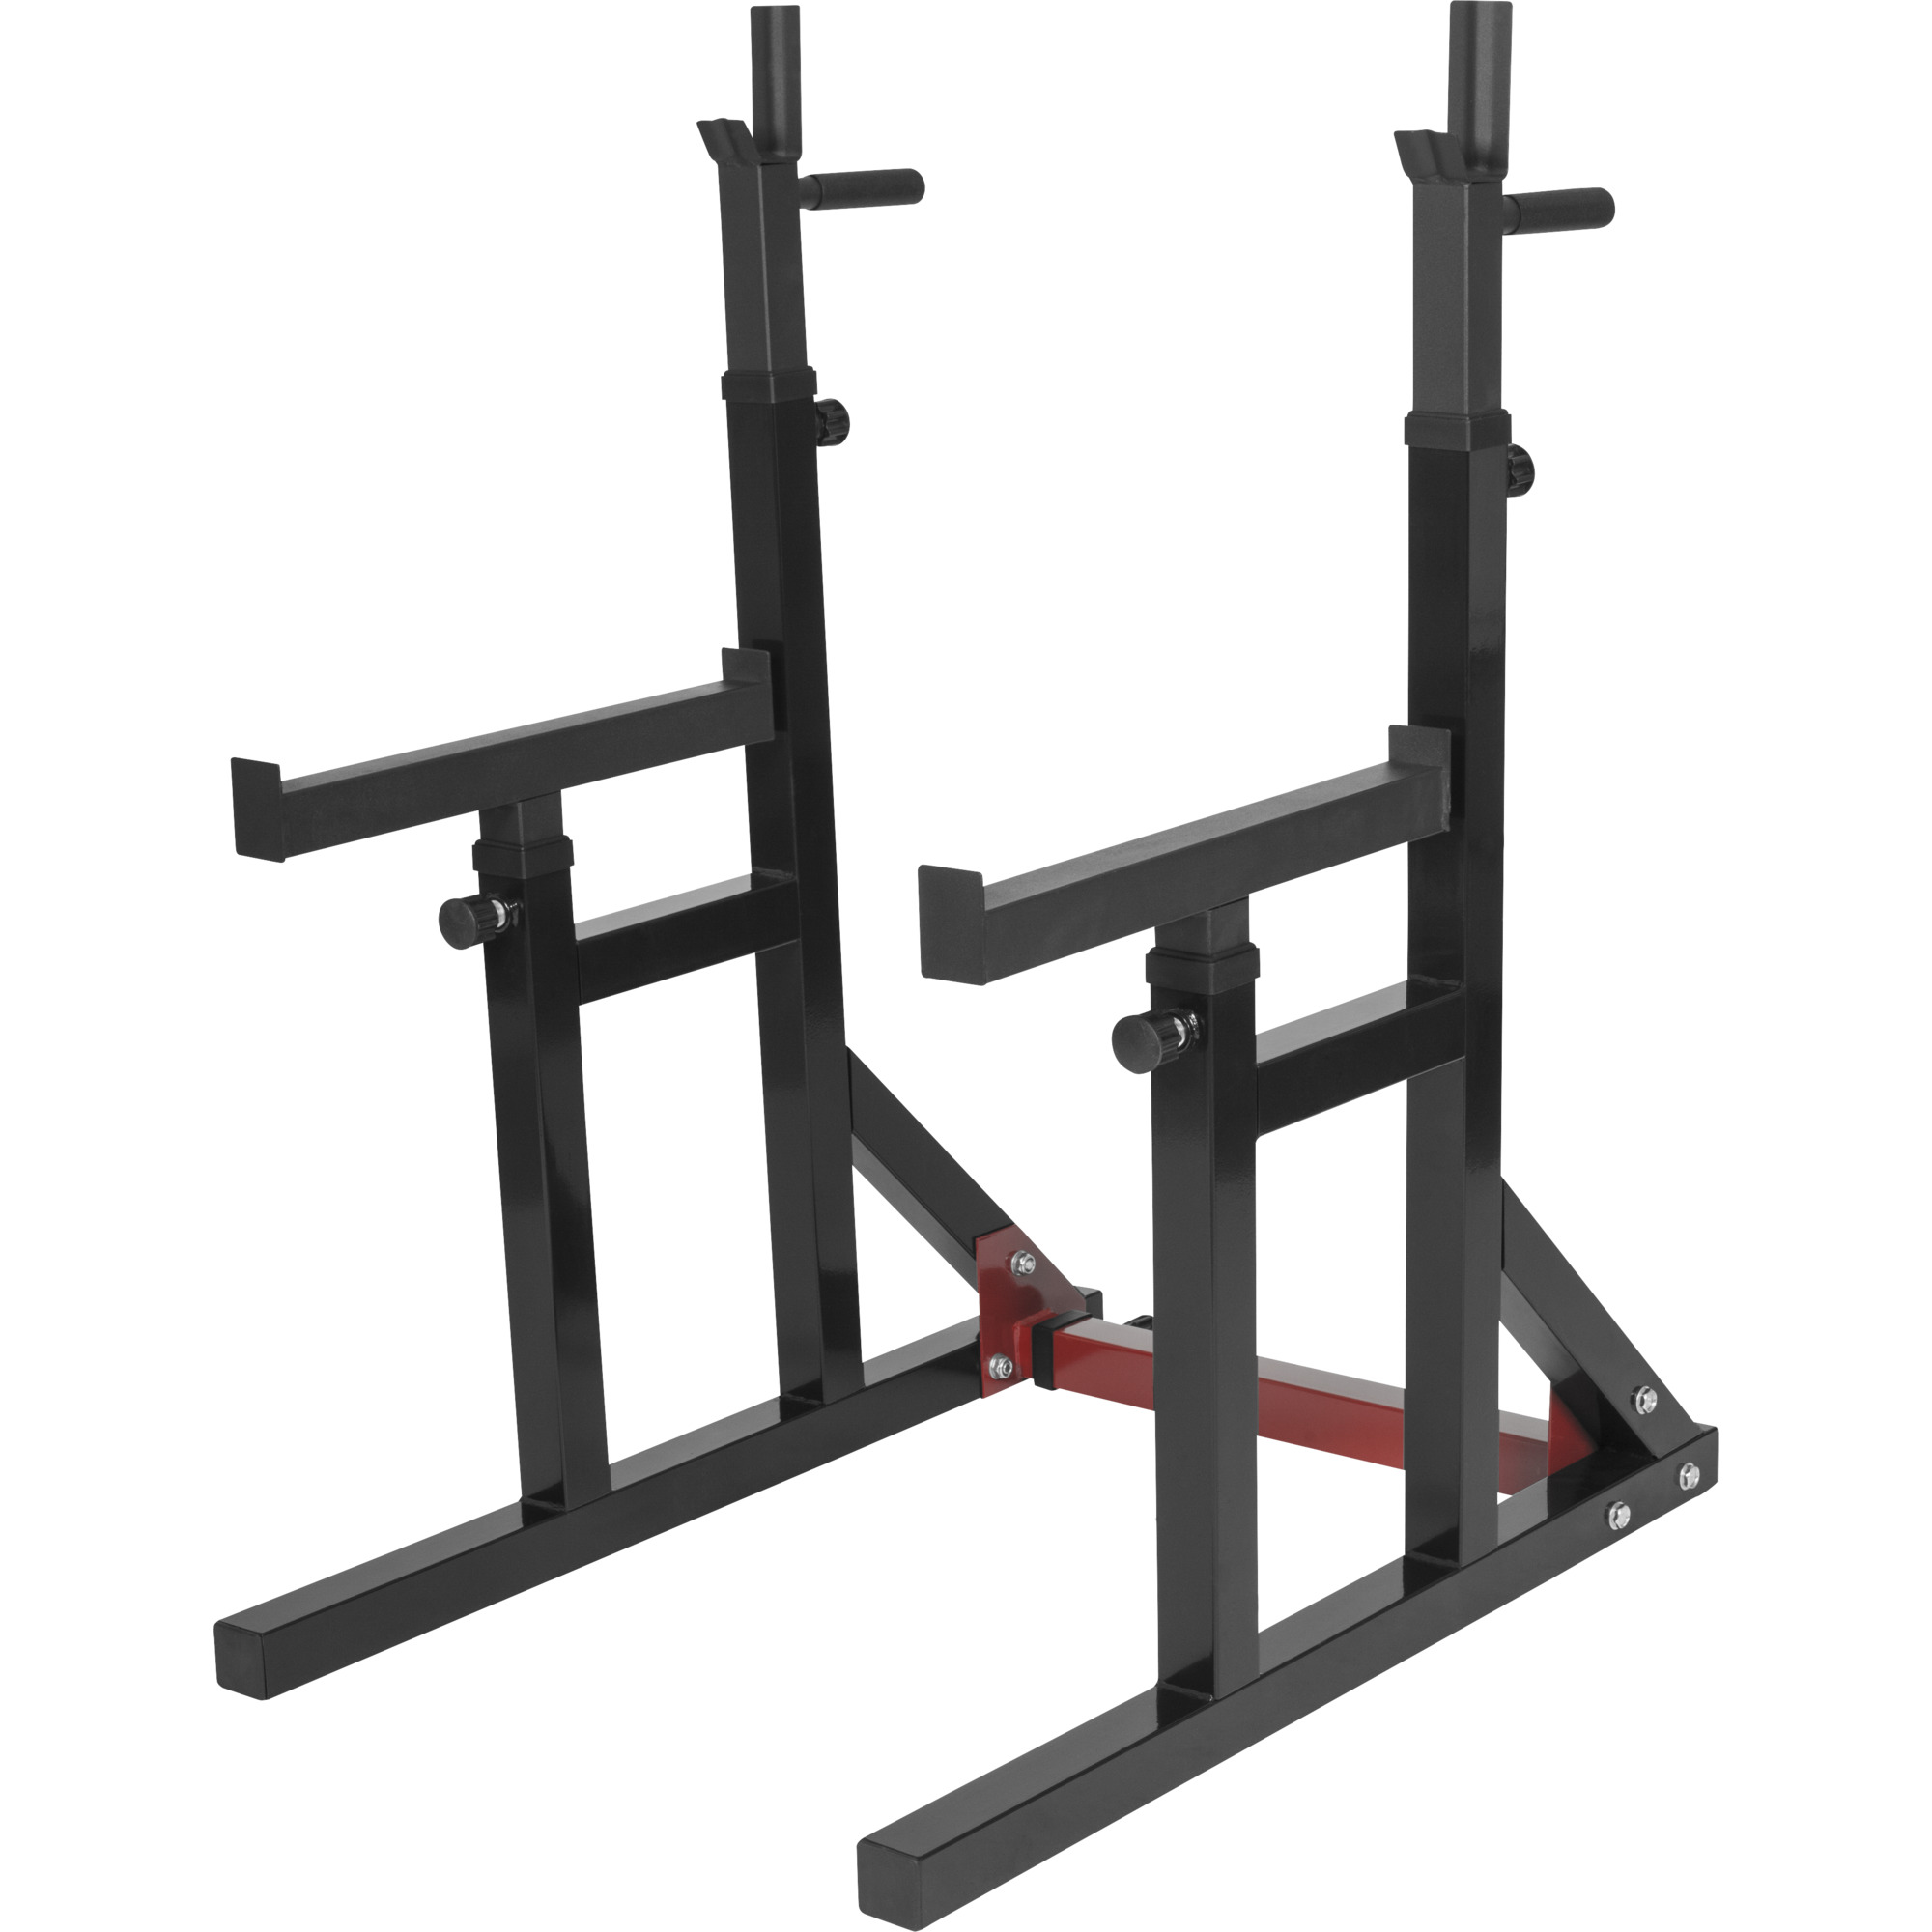 Multi rack squat et developp couch r glable - Banc de developpe couche professionnel ...